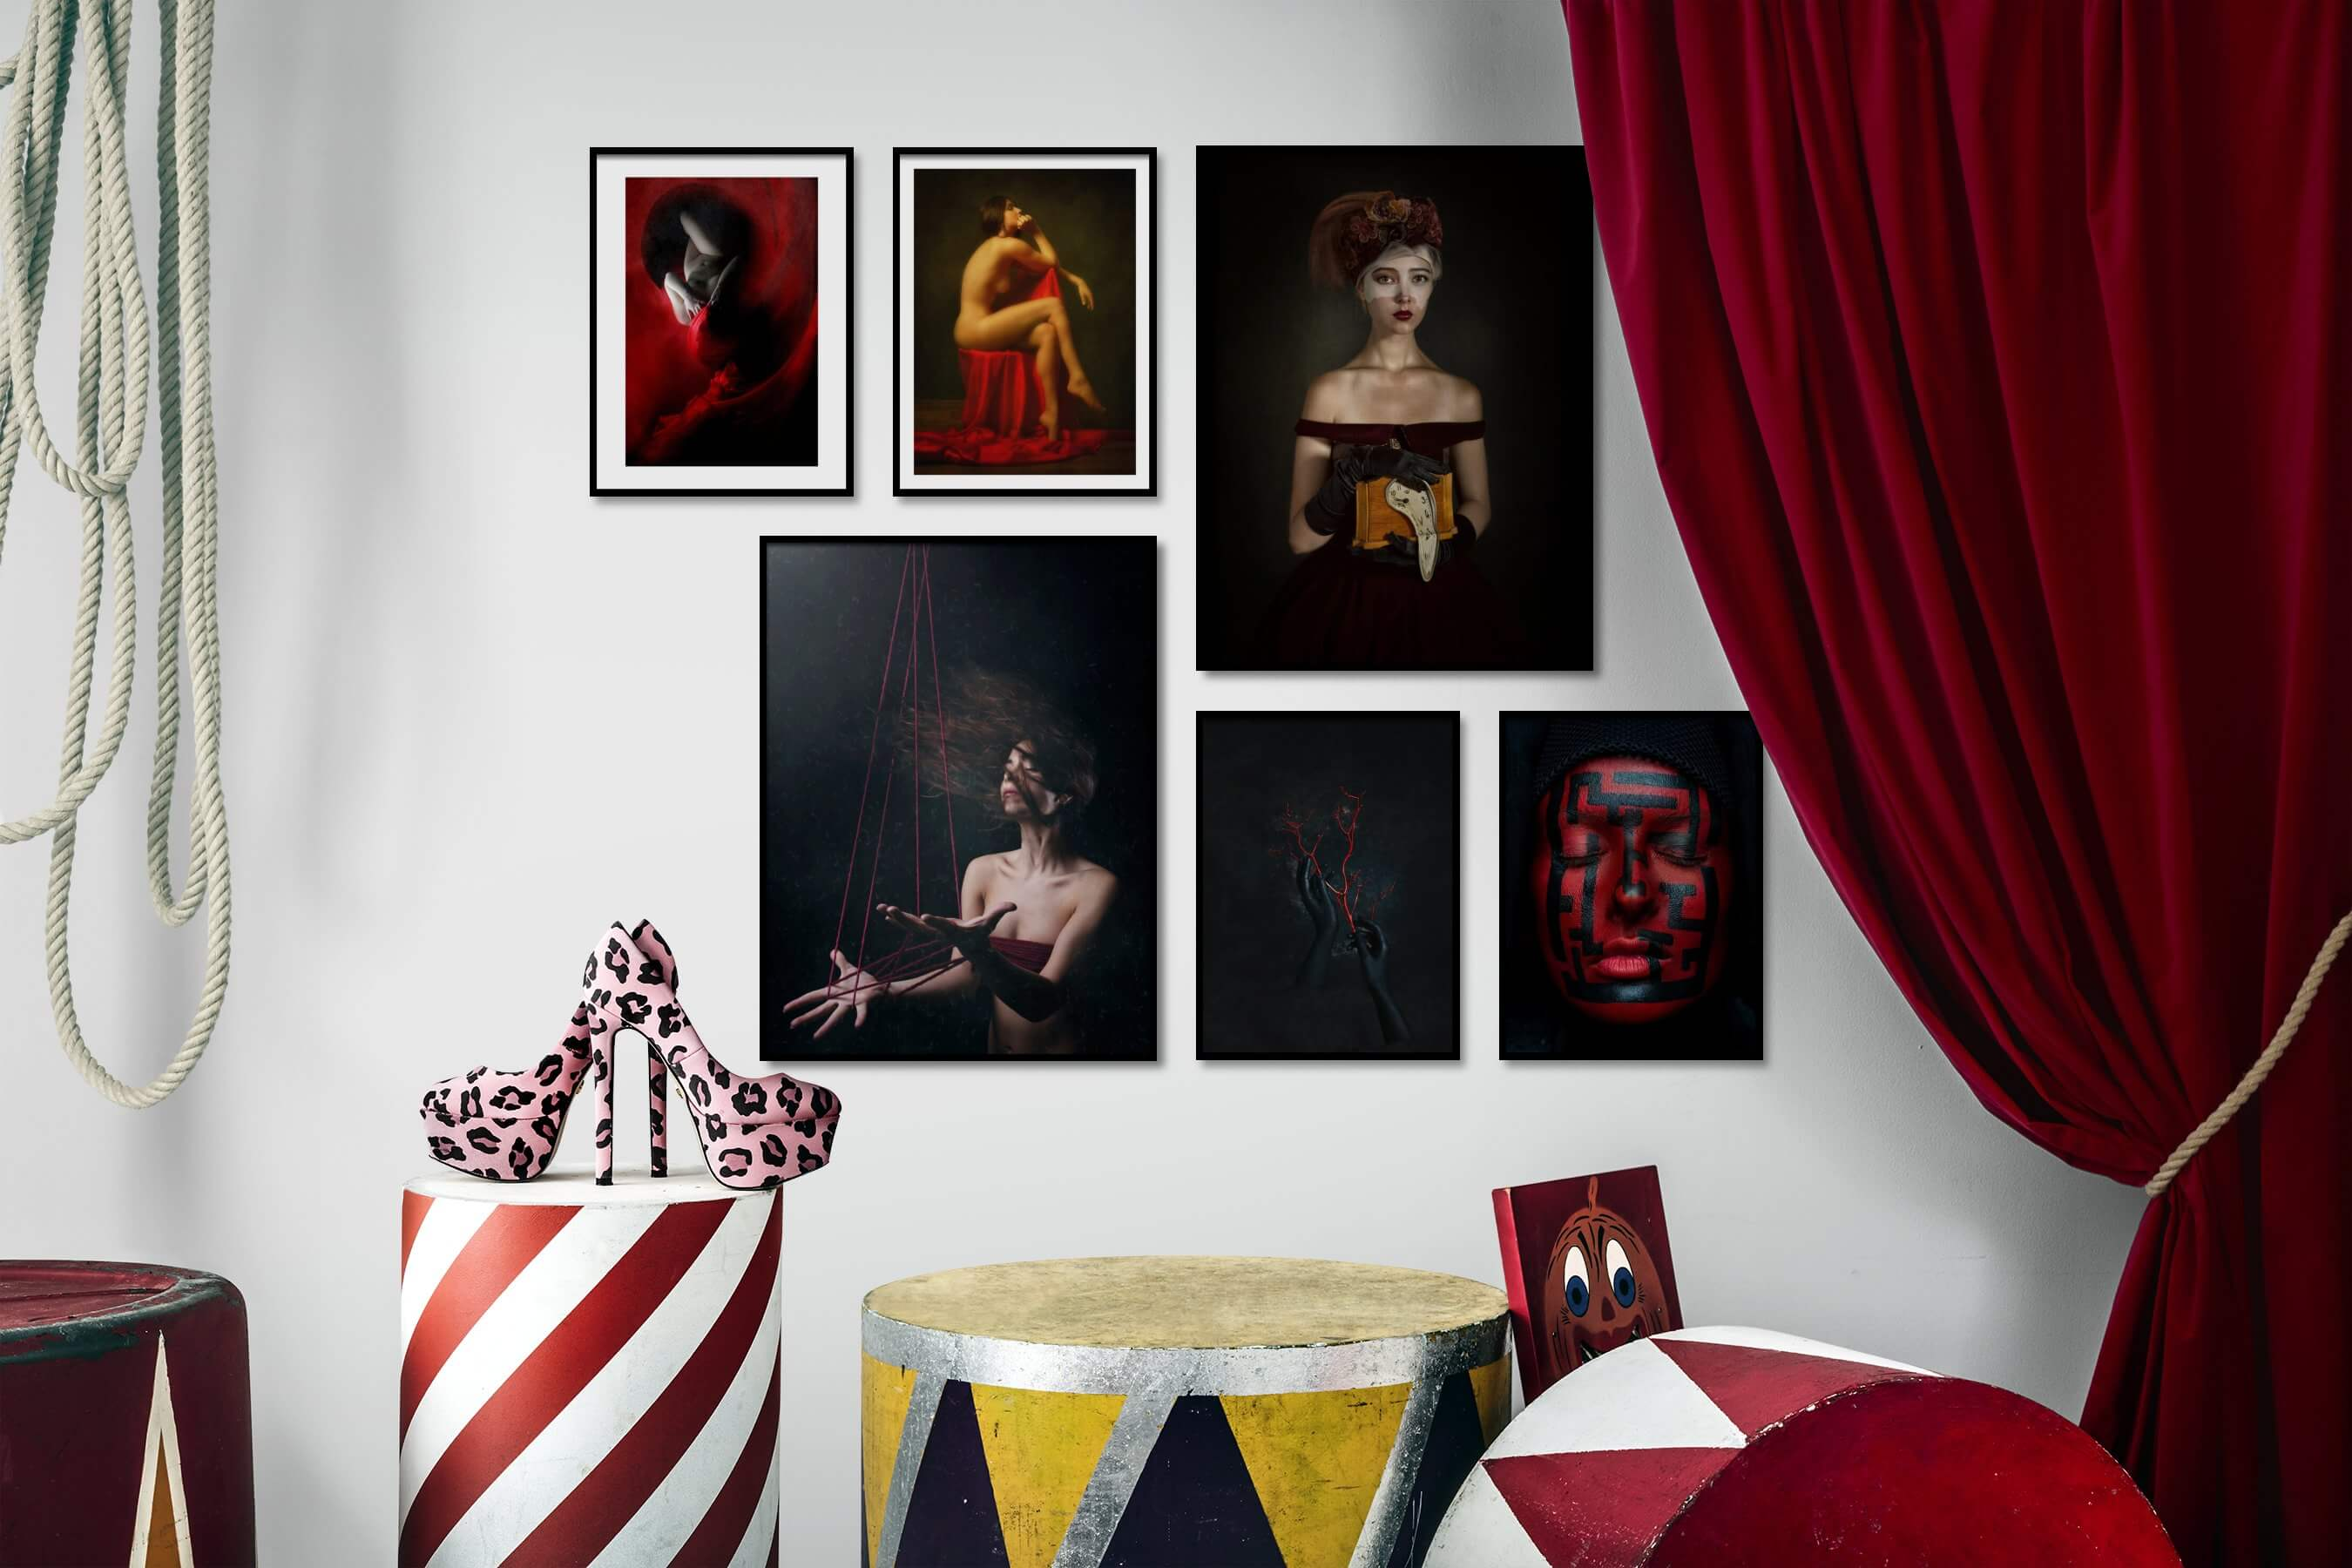 Gallery wall idea with six framed pictures arranged on a wall depicting Artsy, Bold, Fashion & Beauty, Dark Tones, and For the Minimalist